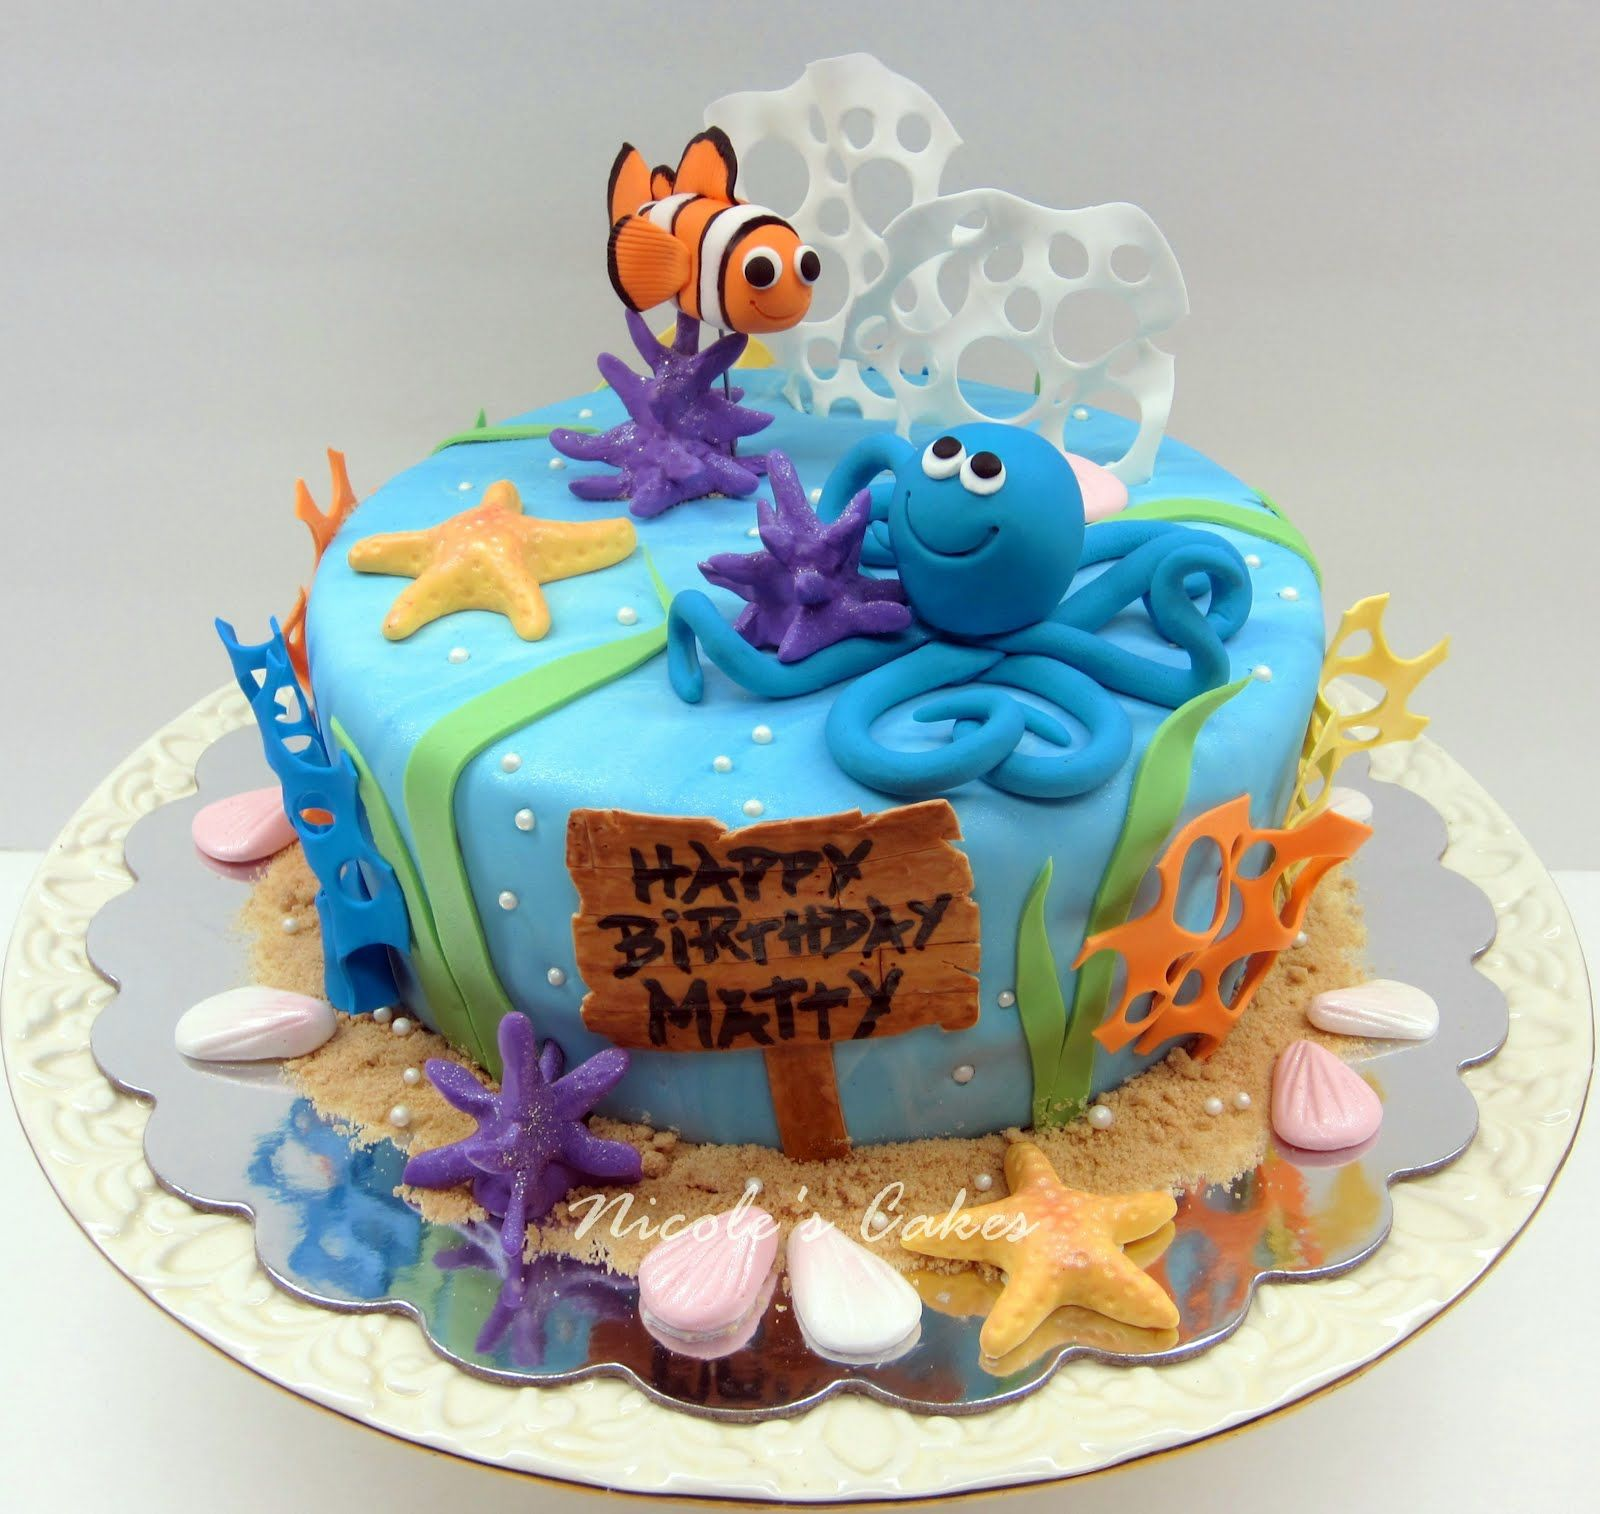 Under The Sea Birthday Cake Ocean Cakes Boy Birthday Cake Cake Designs Birthday